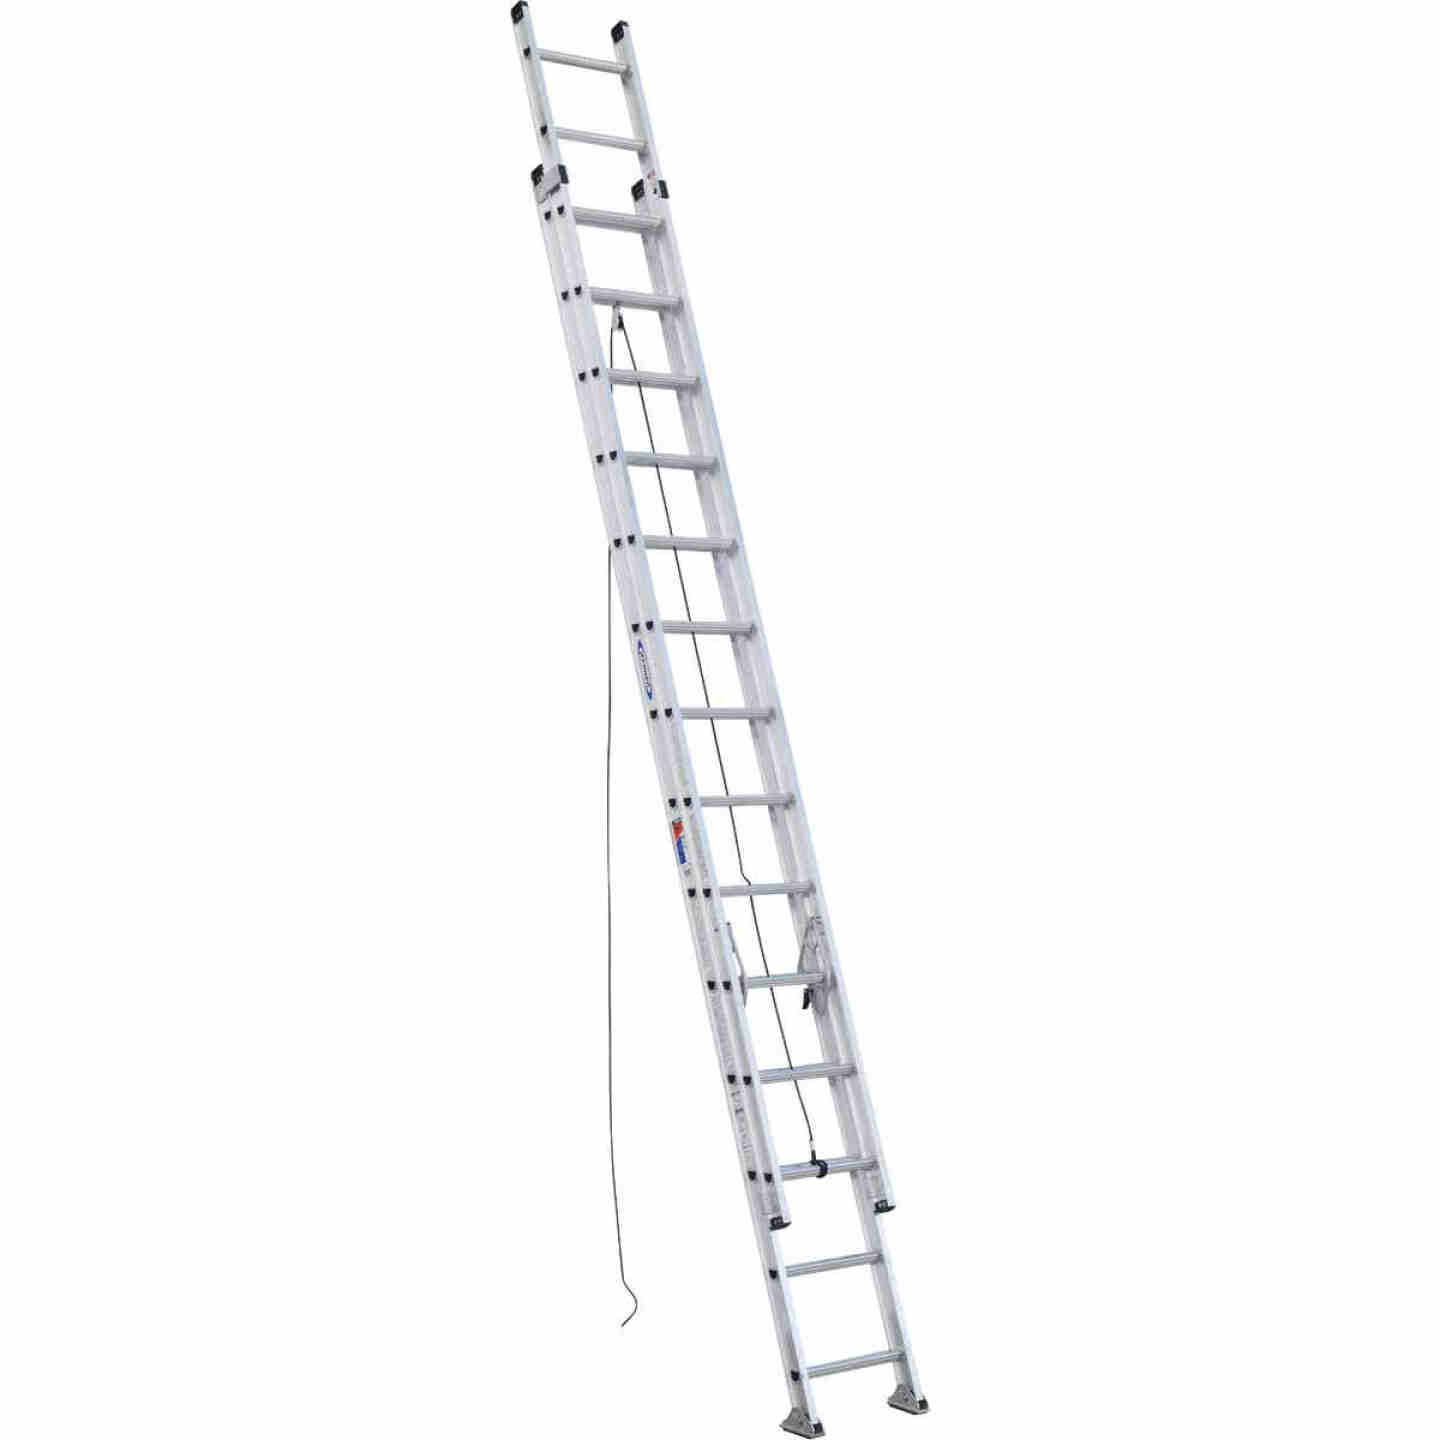 Werner 28 Ft. Aluminum Extension Ladder with 300 Lb. Load Capacity Type IA Duty Rating Image 1